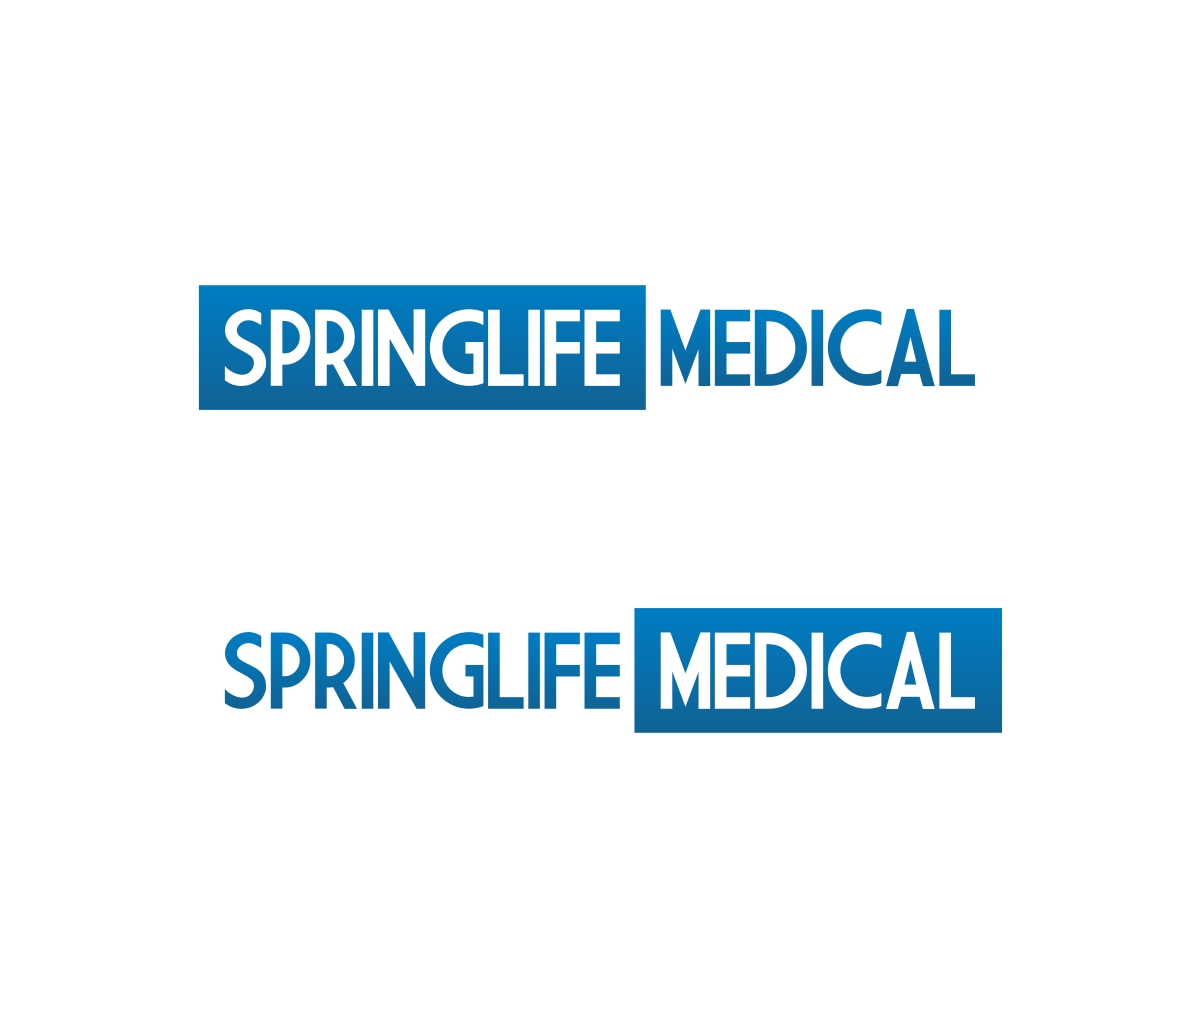 Modern Professional Medical Logo Design For Springlife